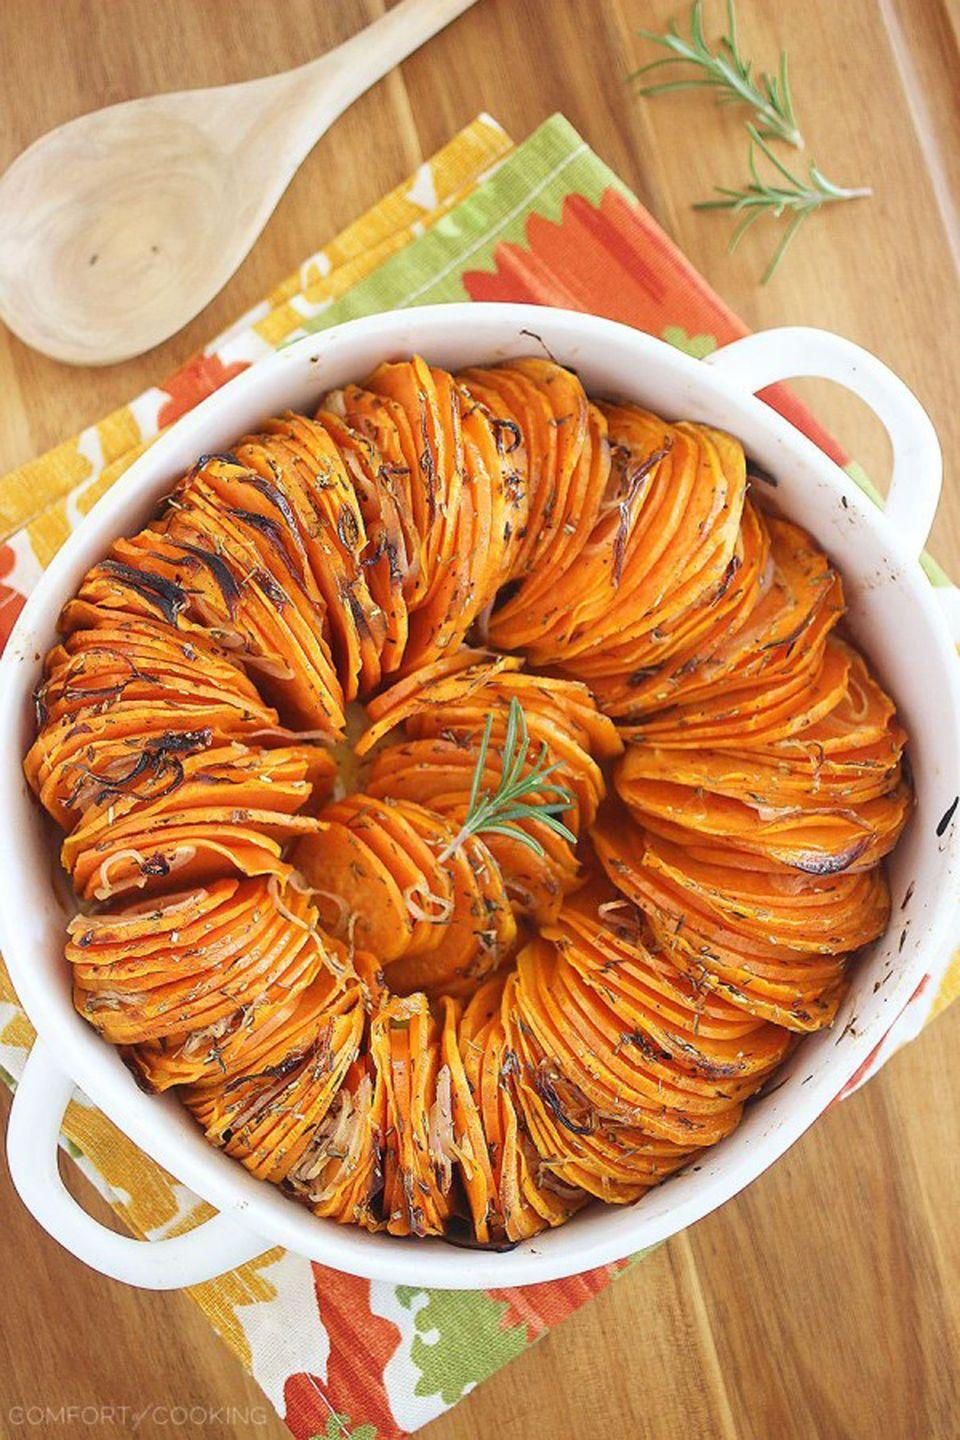 """<p>Butter and olive oil make these sweet potato edges nice and crispy—which, of course, means they're even tastier.</p><p><strong>Get the recipe at <a href=""""http://www.thecomfortofcooking.com/2014/12/crispy-roasted-rosemary-sweet-potatoes.html"""" rel=""""nofollow noopener"""" target=""""_blank"""" data-ylk=""""slk:The Comfort of Cooking"""" class=""""link rapid-noclick-resp"""">The Comfort of Cooking</a>.</strong></p><p><strong><a class=""""link rapid-noclick-resp"""" href=""""https://www.amazon.com/Fullstar-Mandoline-Slicer-Spiralizer-Vegetable/dp/B07QKHTM11/?tag=syn-yahoo-20&ascsubtag=%5Bartid%7C10050.g.877%5Bsrc%7Cyahoo-us"""" rel=""""nofollow noopener"""" target=""""_blank"""" data-ylk=""""slk:SHOP FOOD SLICERS"""">SHOP FOOD SLICERS</a><br></strong></p>"""